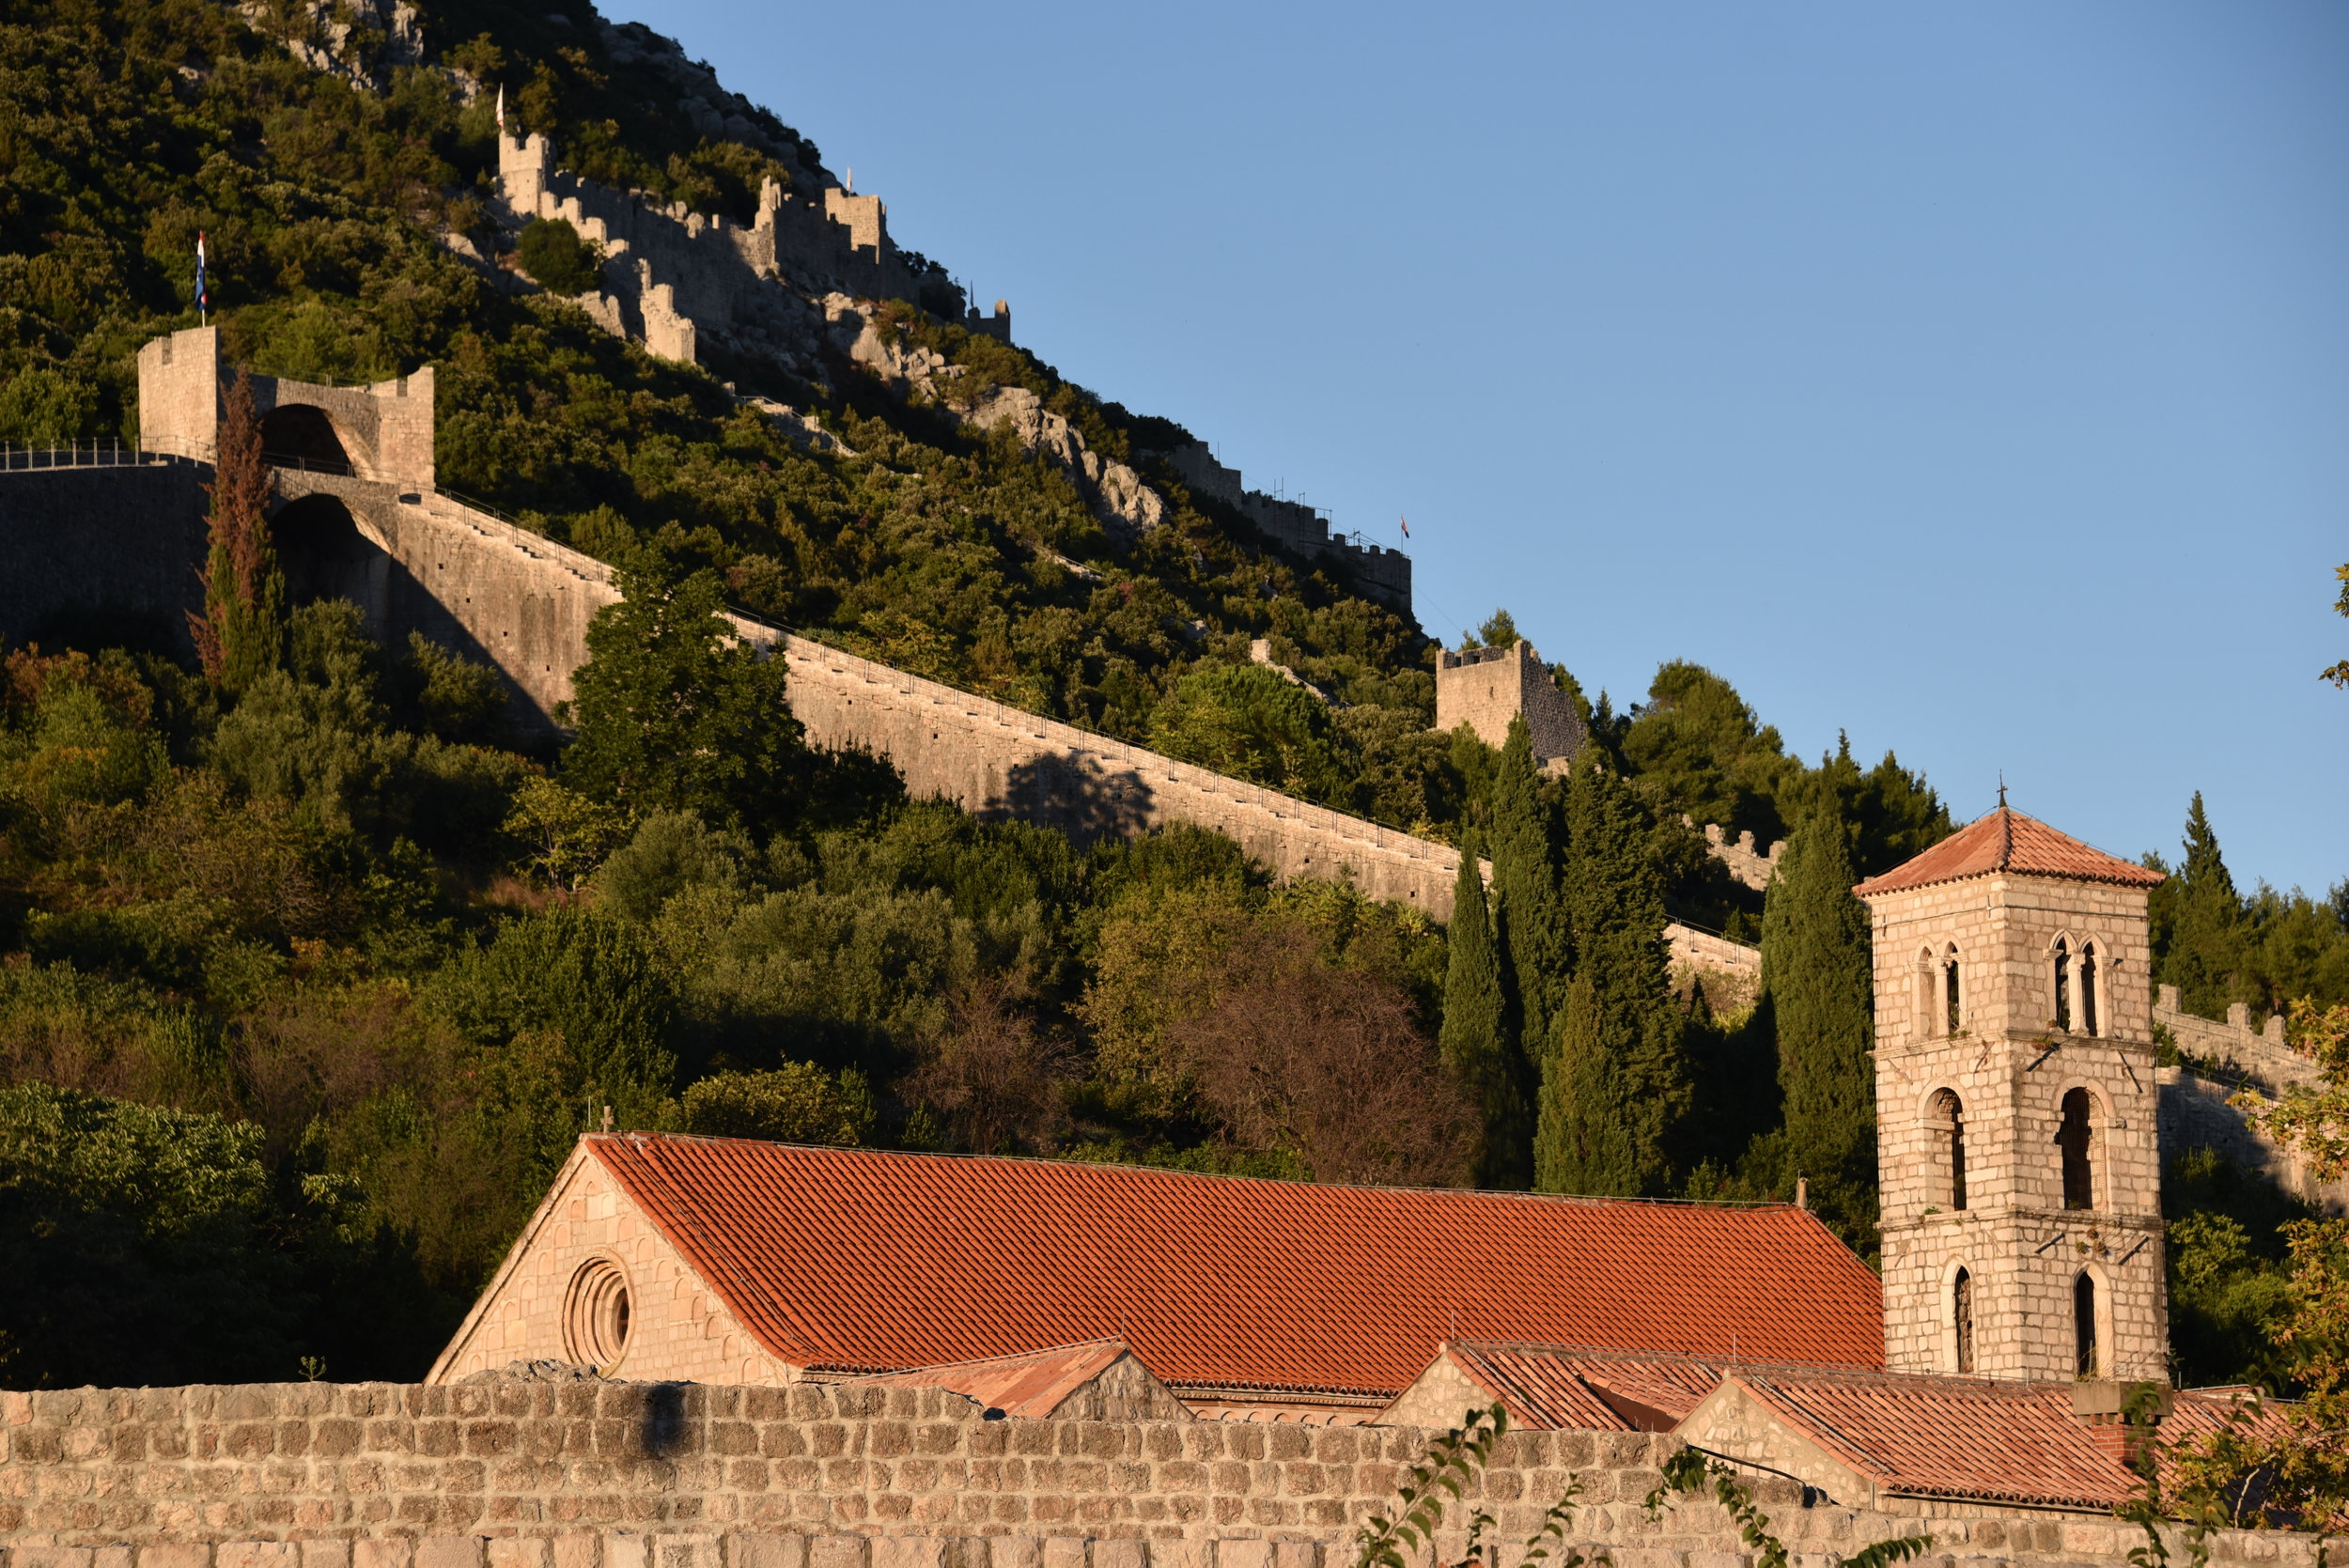 Walls of Ston at sunset, as viewed from outside the walls below.